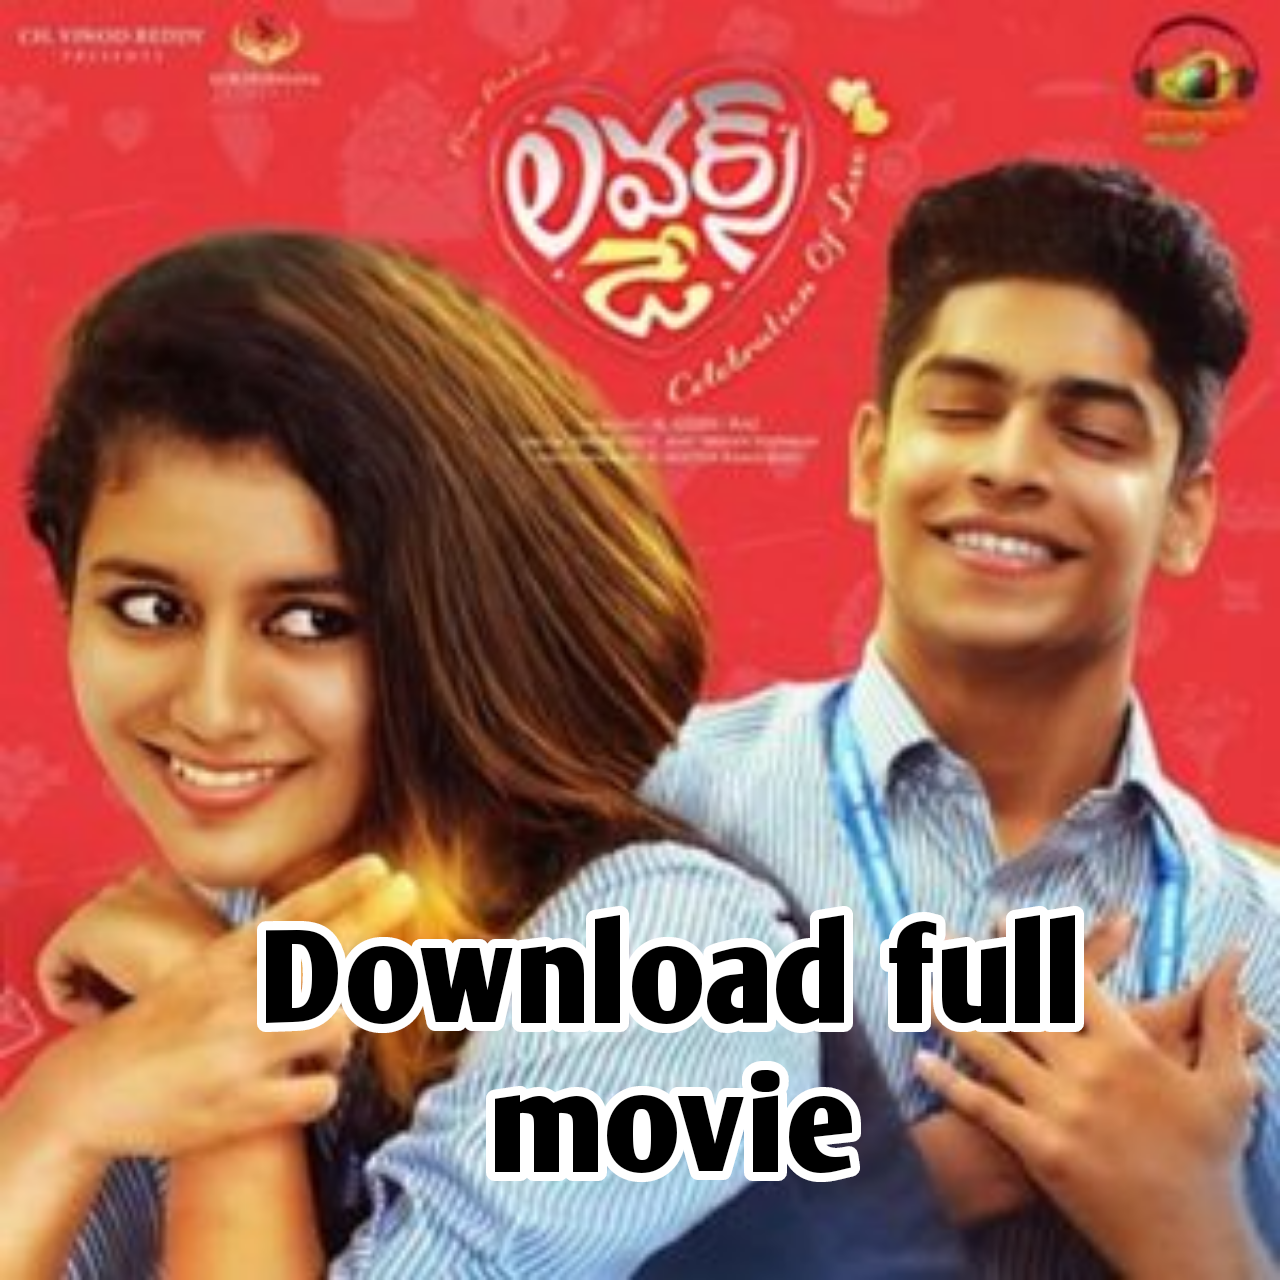 Lovers day telugu full movie download 2019 720p Lovers Day